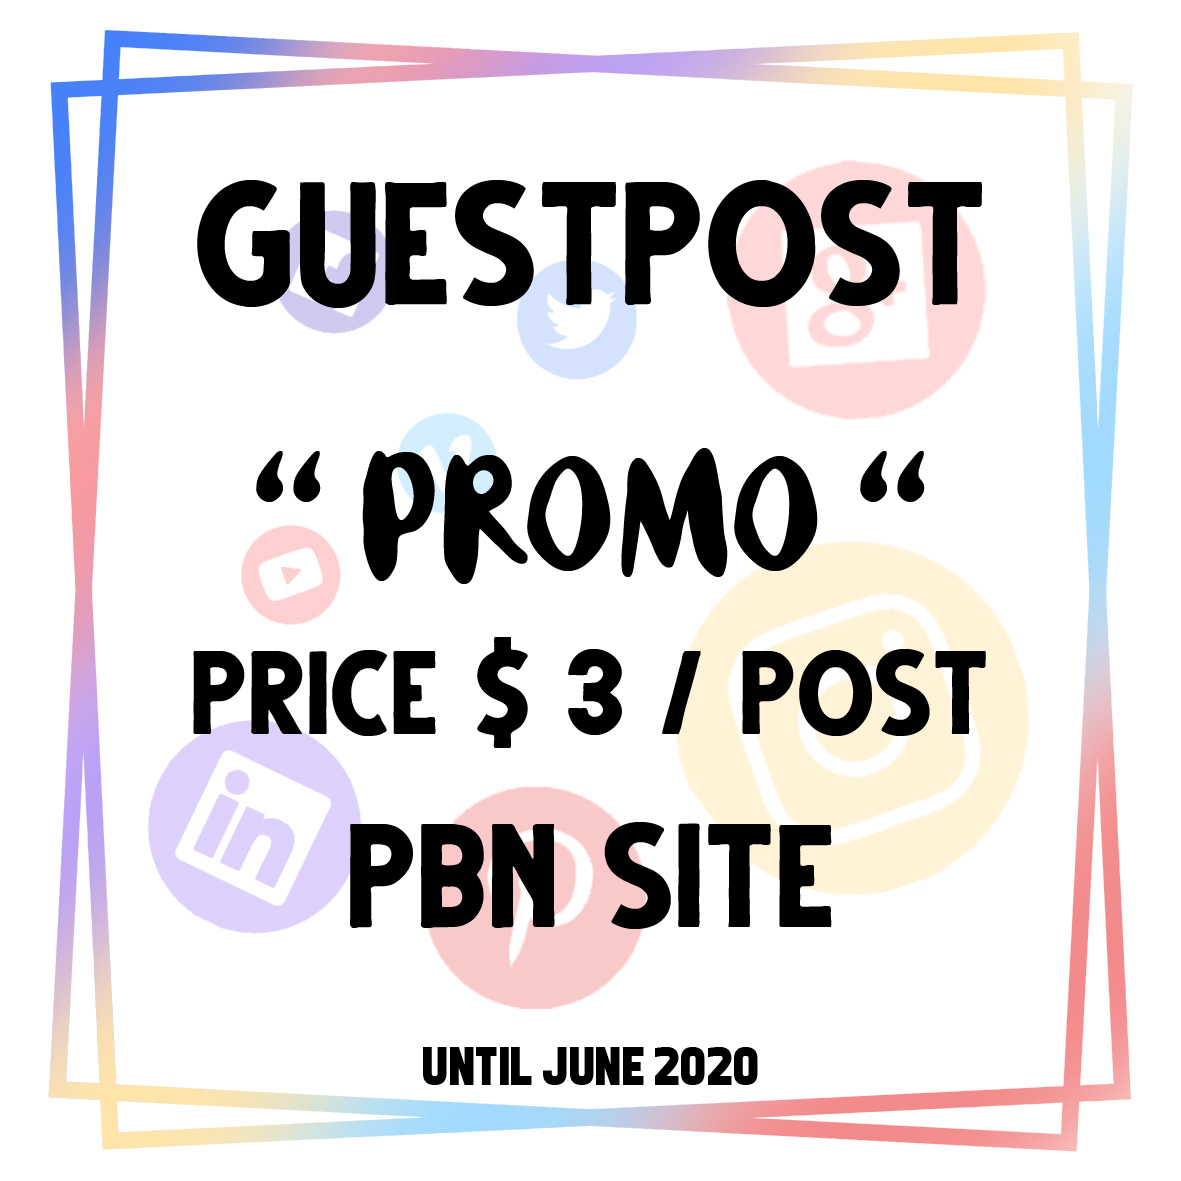 I will provide 1200 PBNs for Guest Post Paid (Article Post)